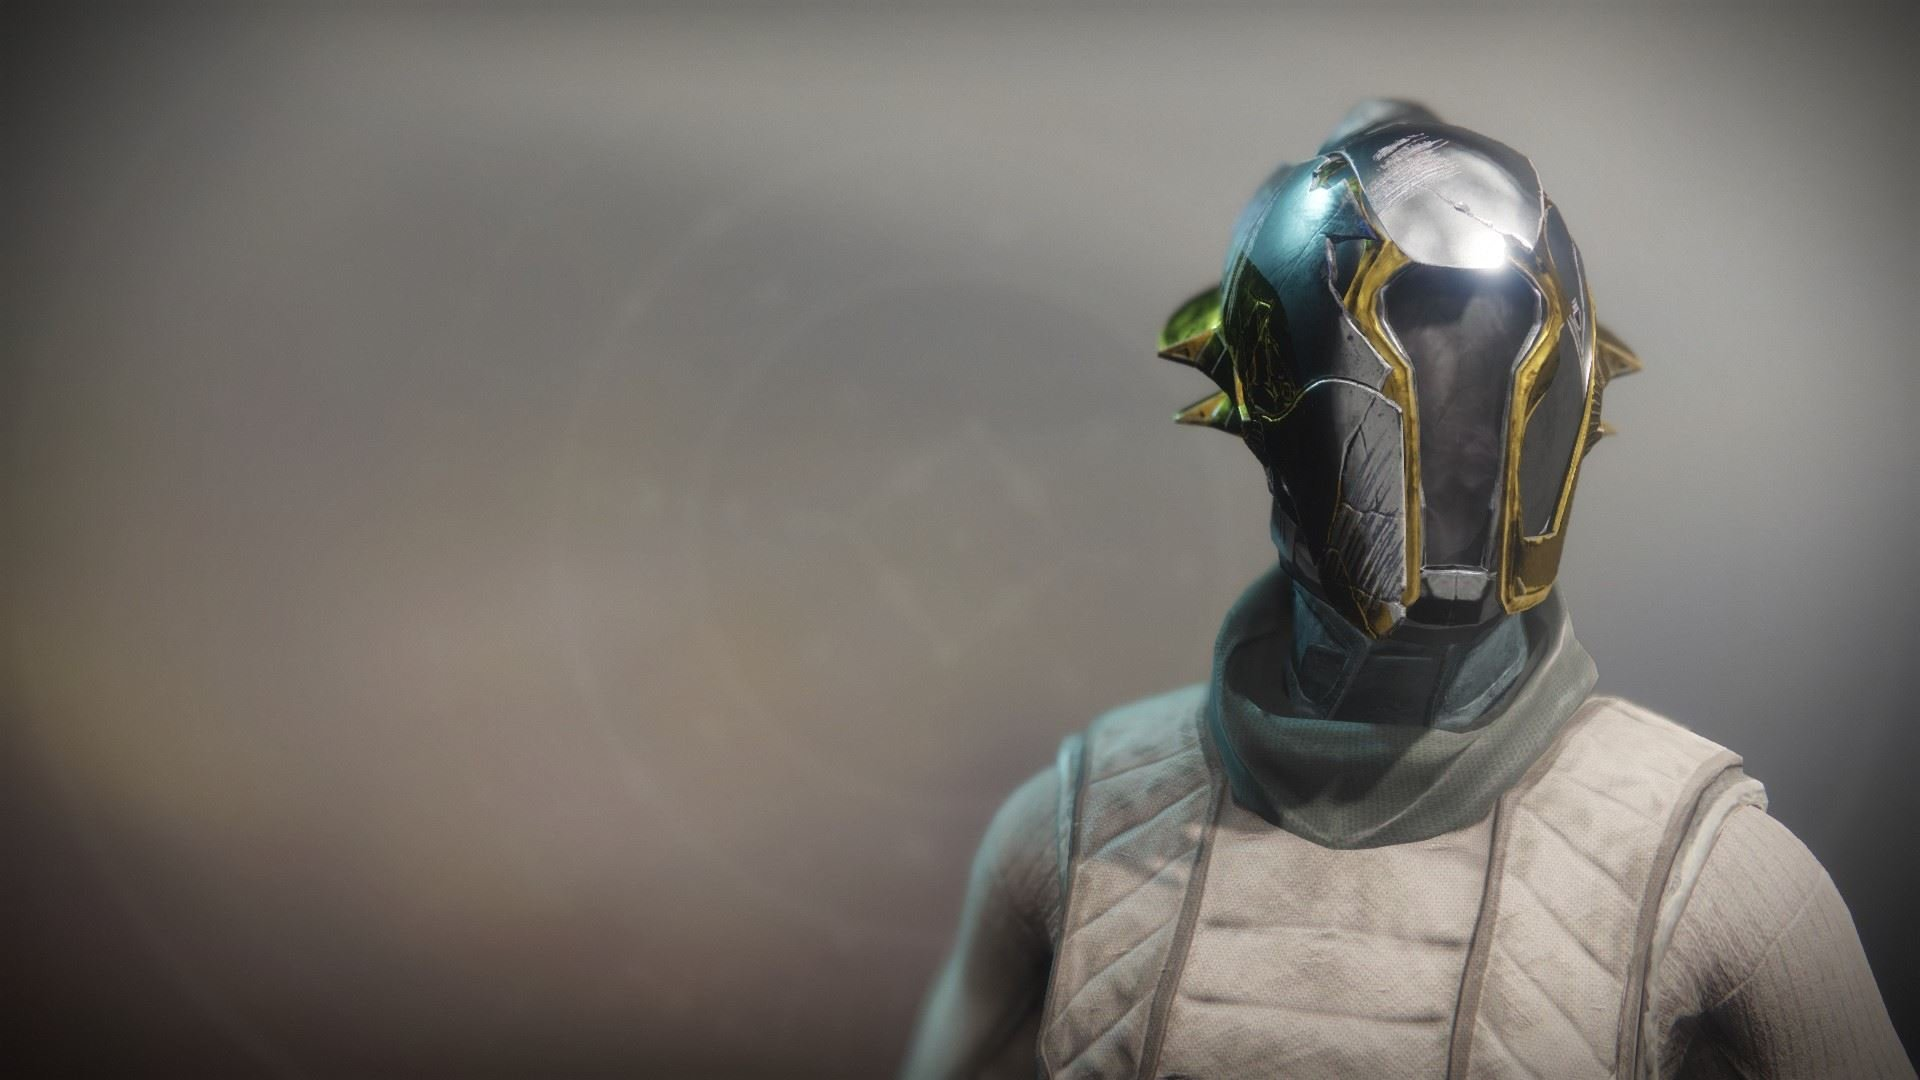 An in-game render of the Solstice Hood (Scorched).